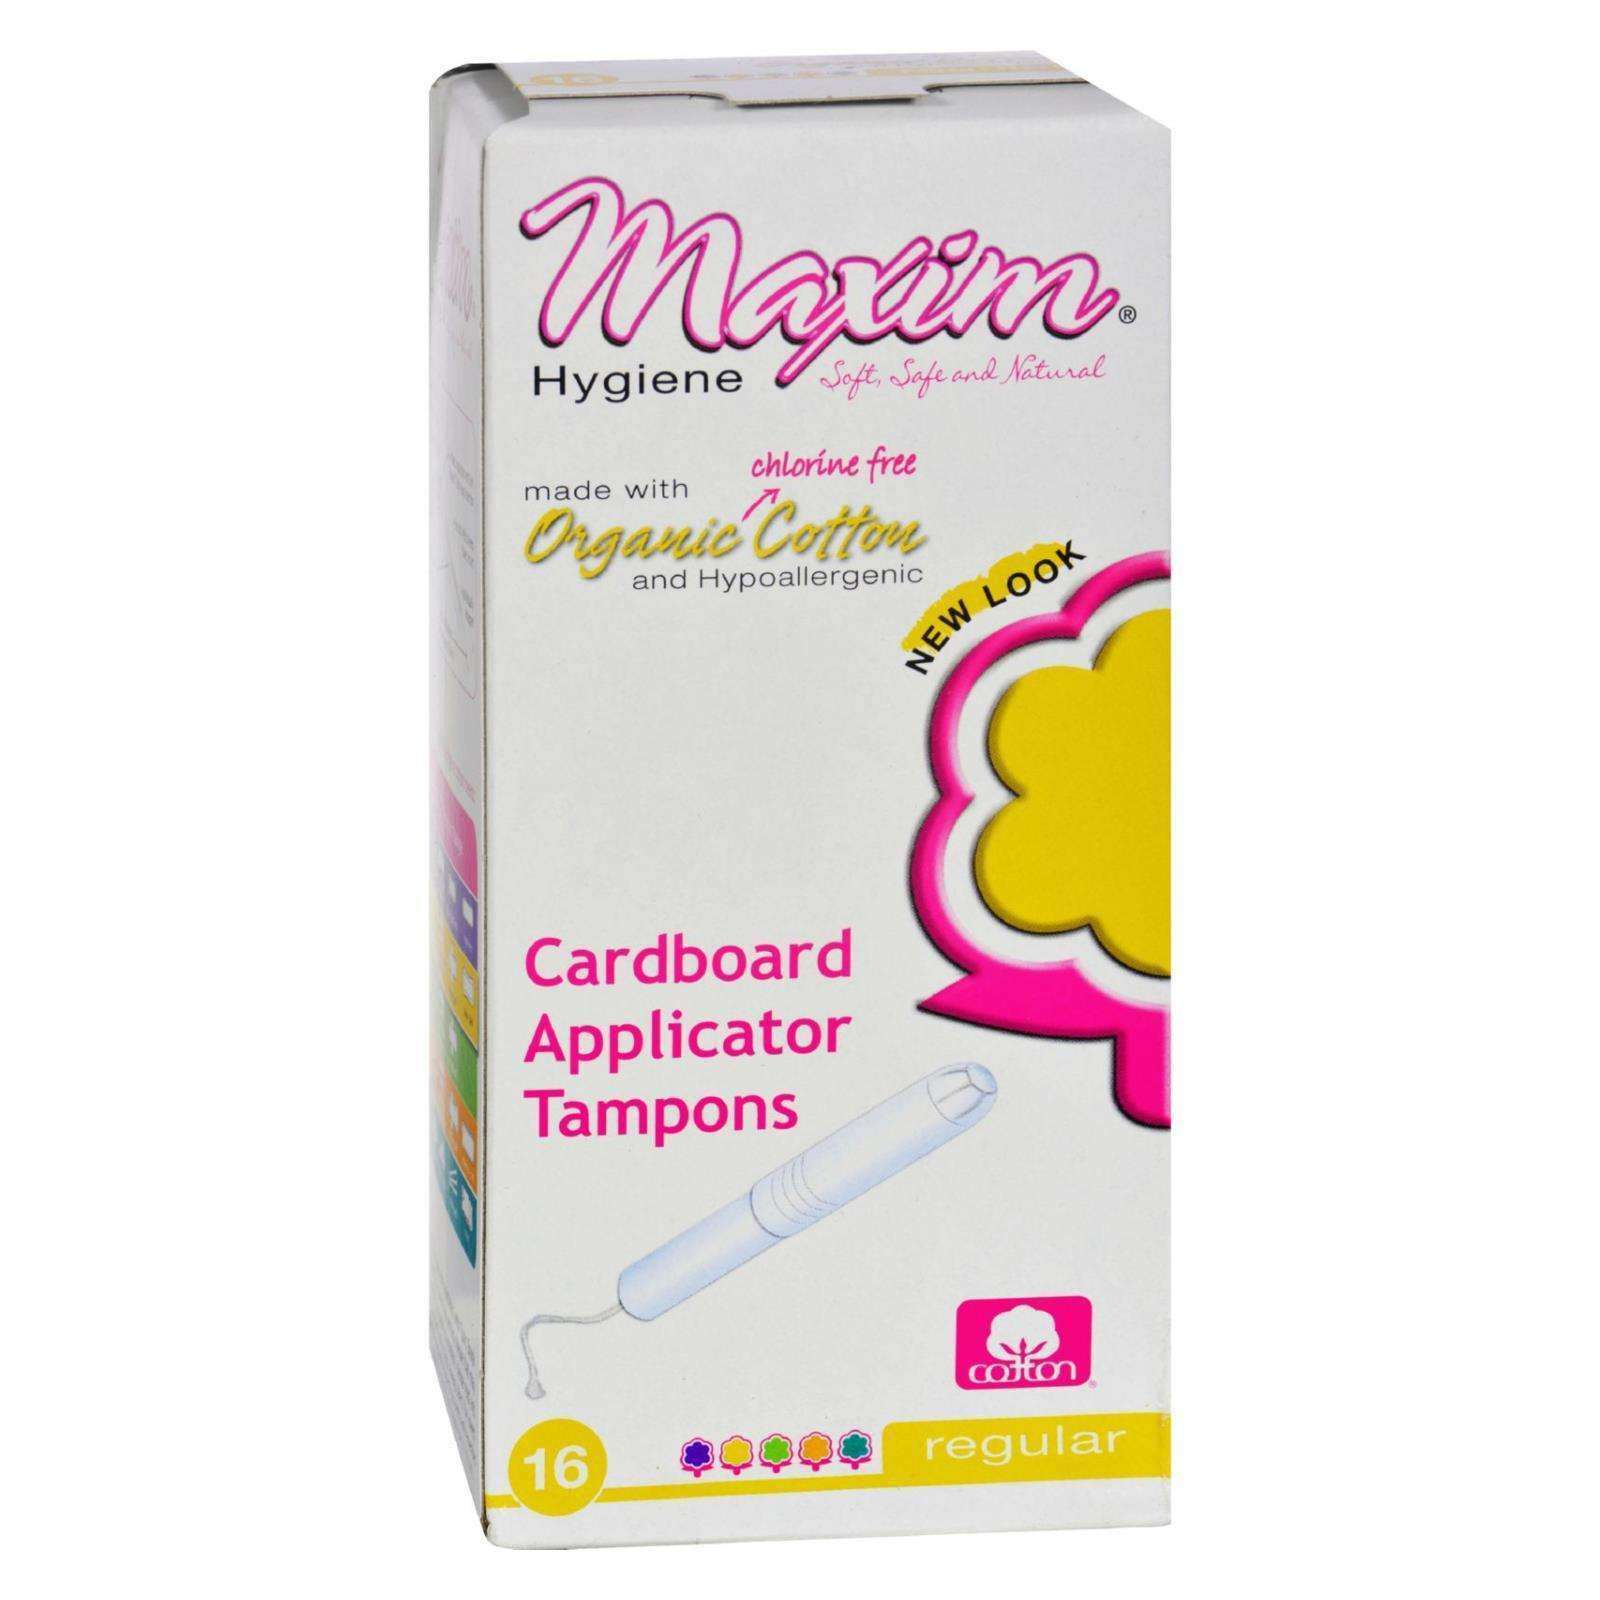 Maxim Hygiene Organic Cotton Cardboard Applicator Tampons Regular - 16 Tampons - BeeGreen